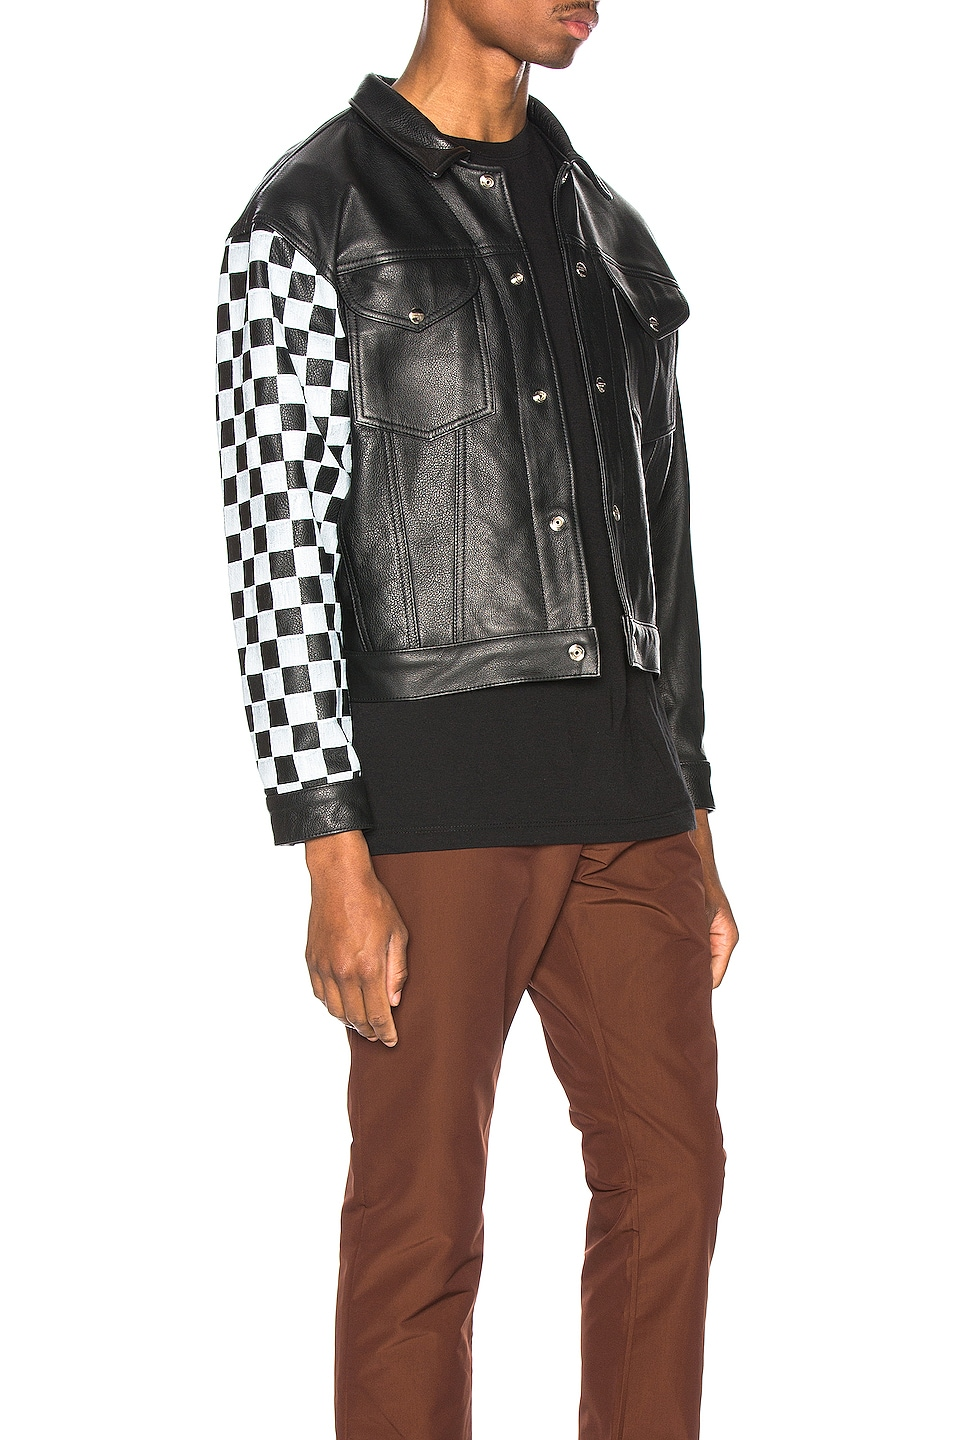 Image 2 of Enfants Riches Deprimes Checkered Sleeve Leather Jacket in Black & White